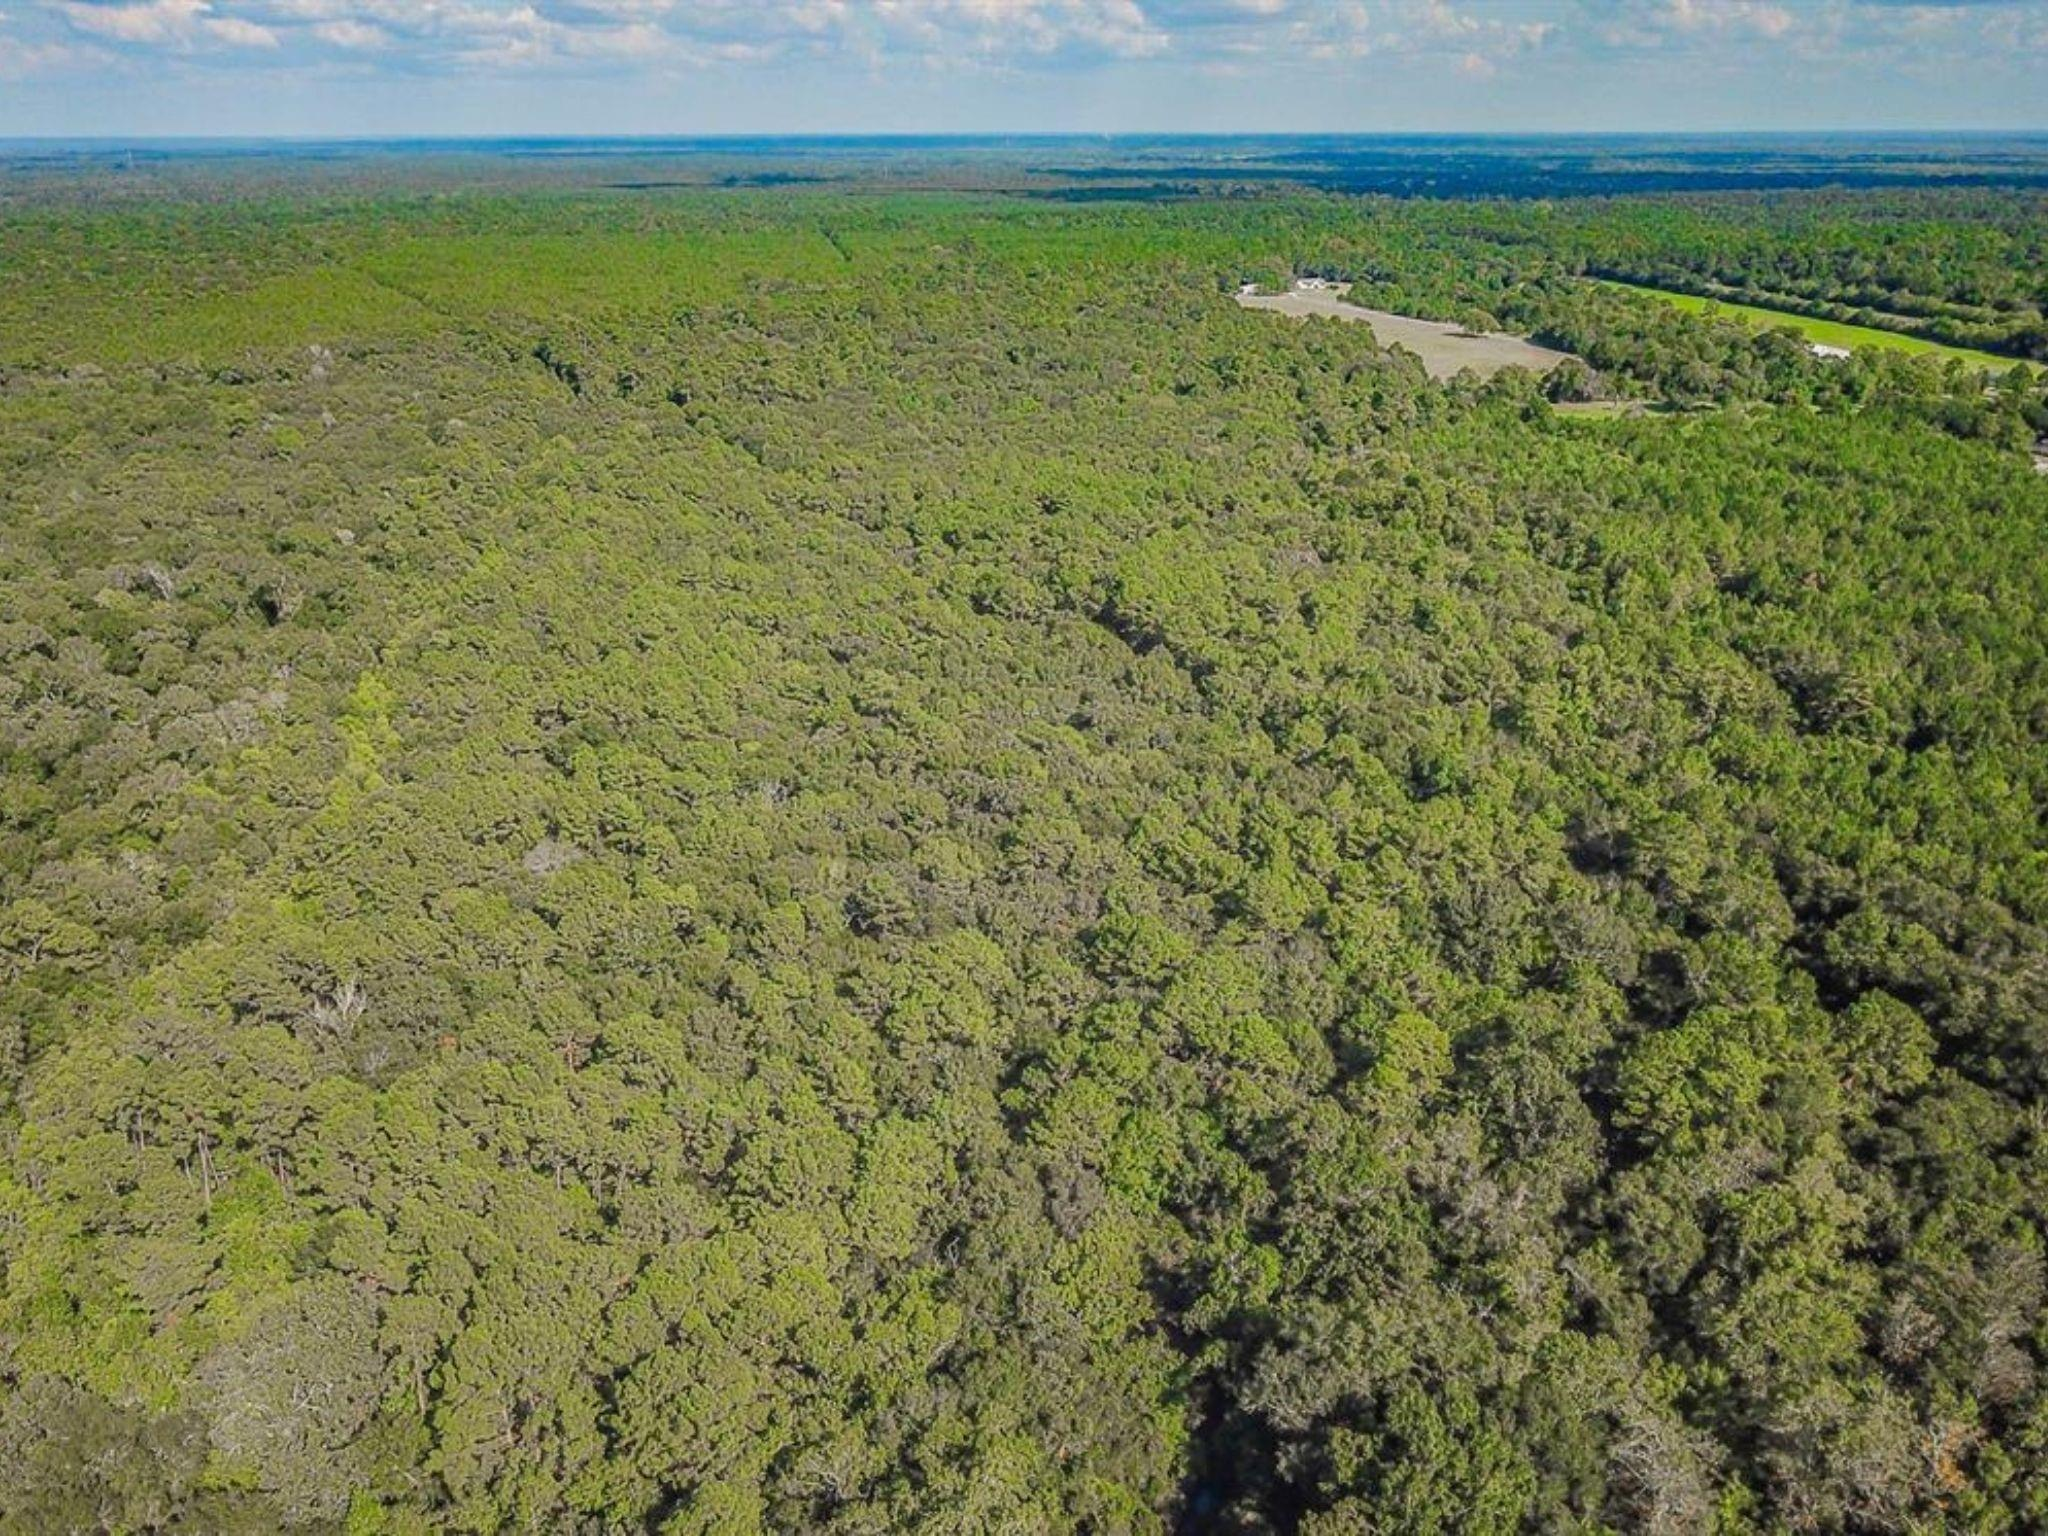 0 Hwy 321/Tract 4 Property Photo - Dayton, TX real estate listing